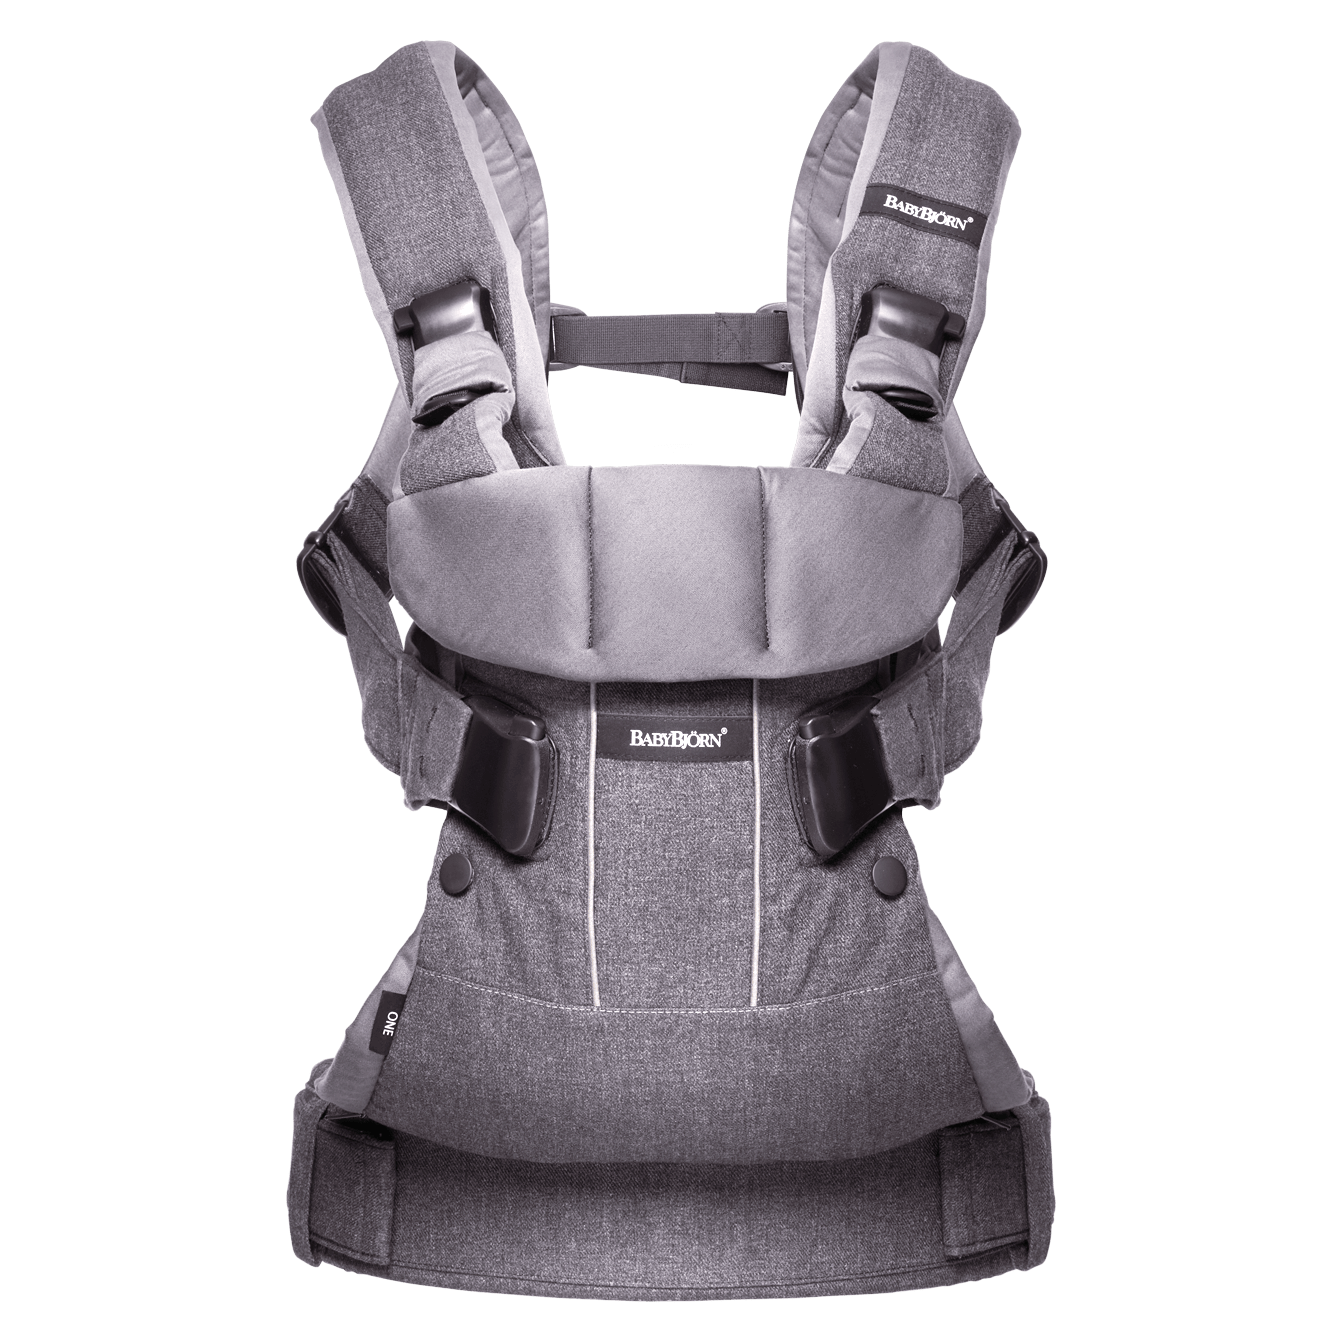 BABYBJÖRN Baby Carrier One in denim grey/dark grey cotton mix, an ergonomic baby carrier perfect for newborn up to 3 years.